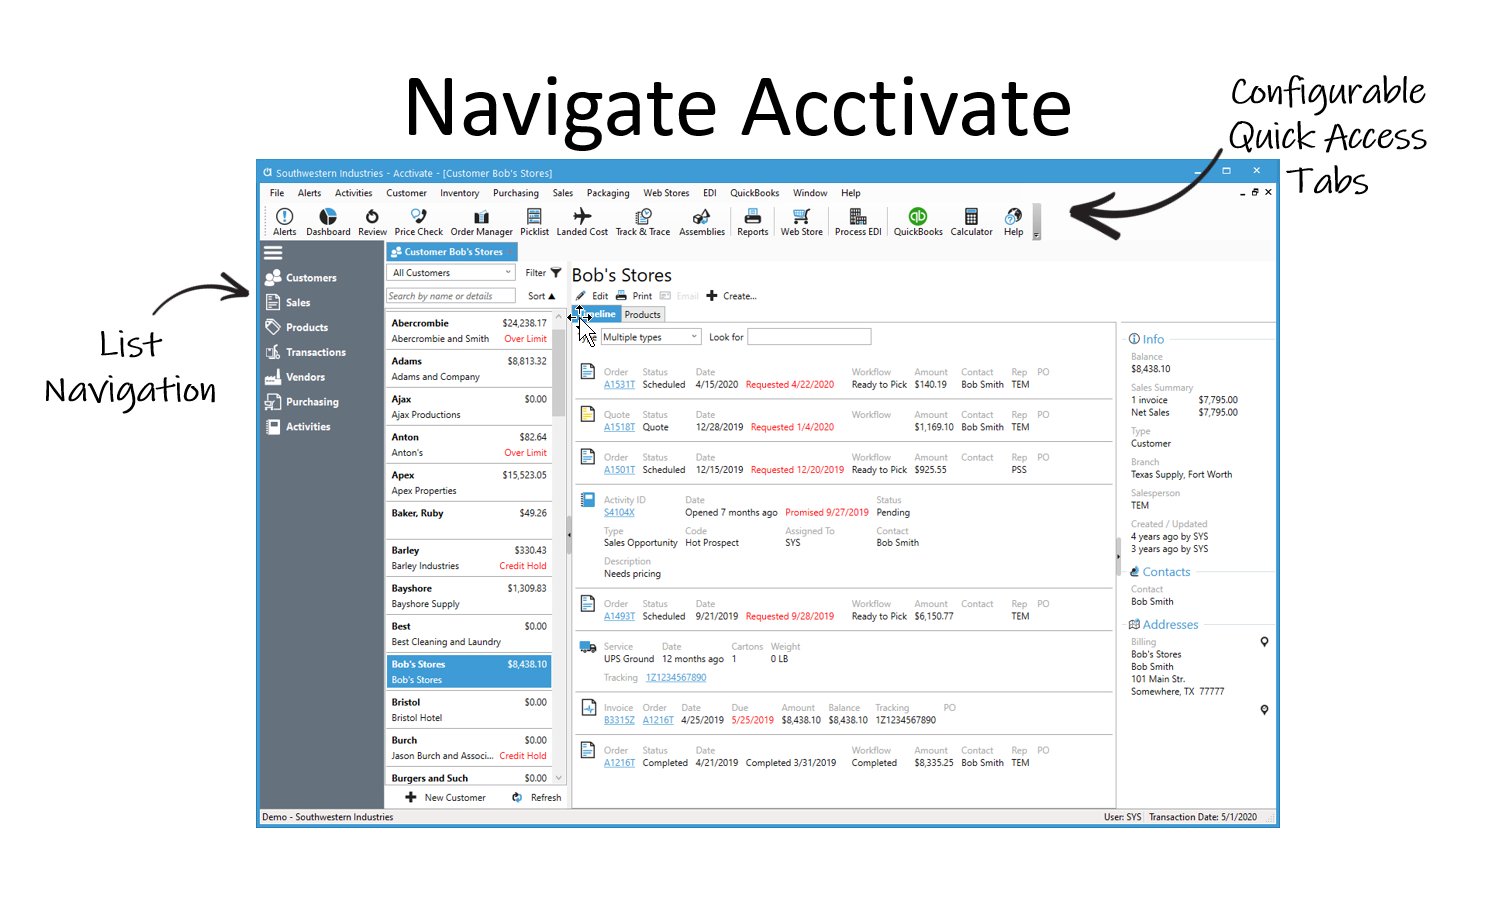 Navigating Acctivate